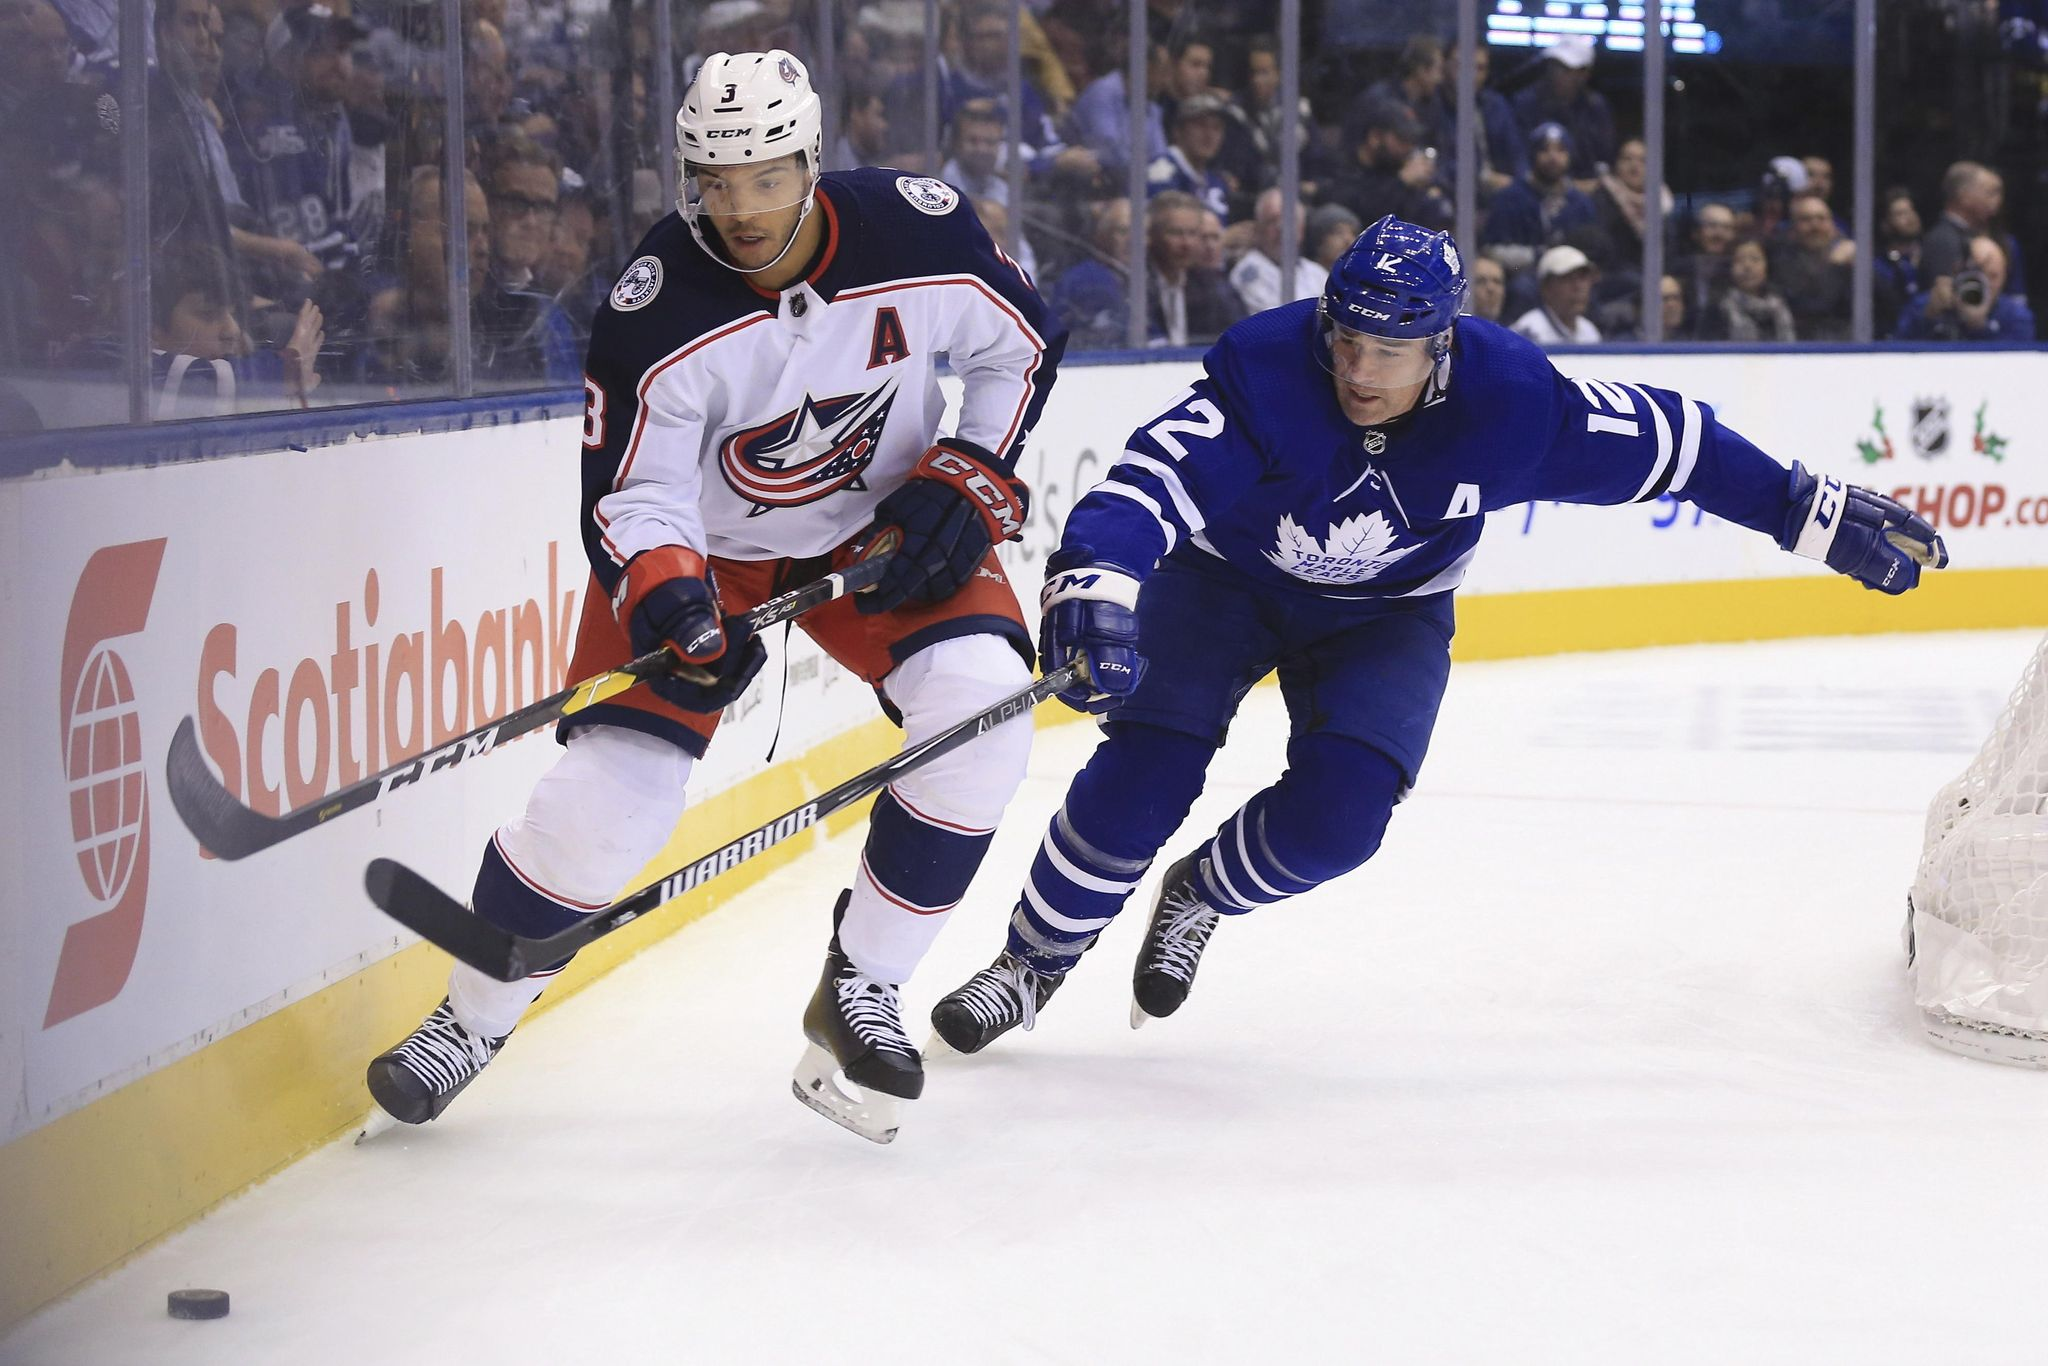 Blue_jackets_maple_leafs_hockey_69316_s2048x1366